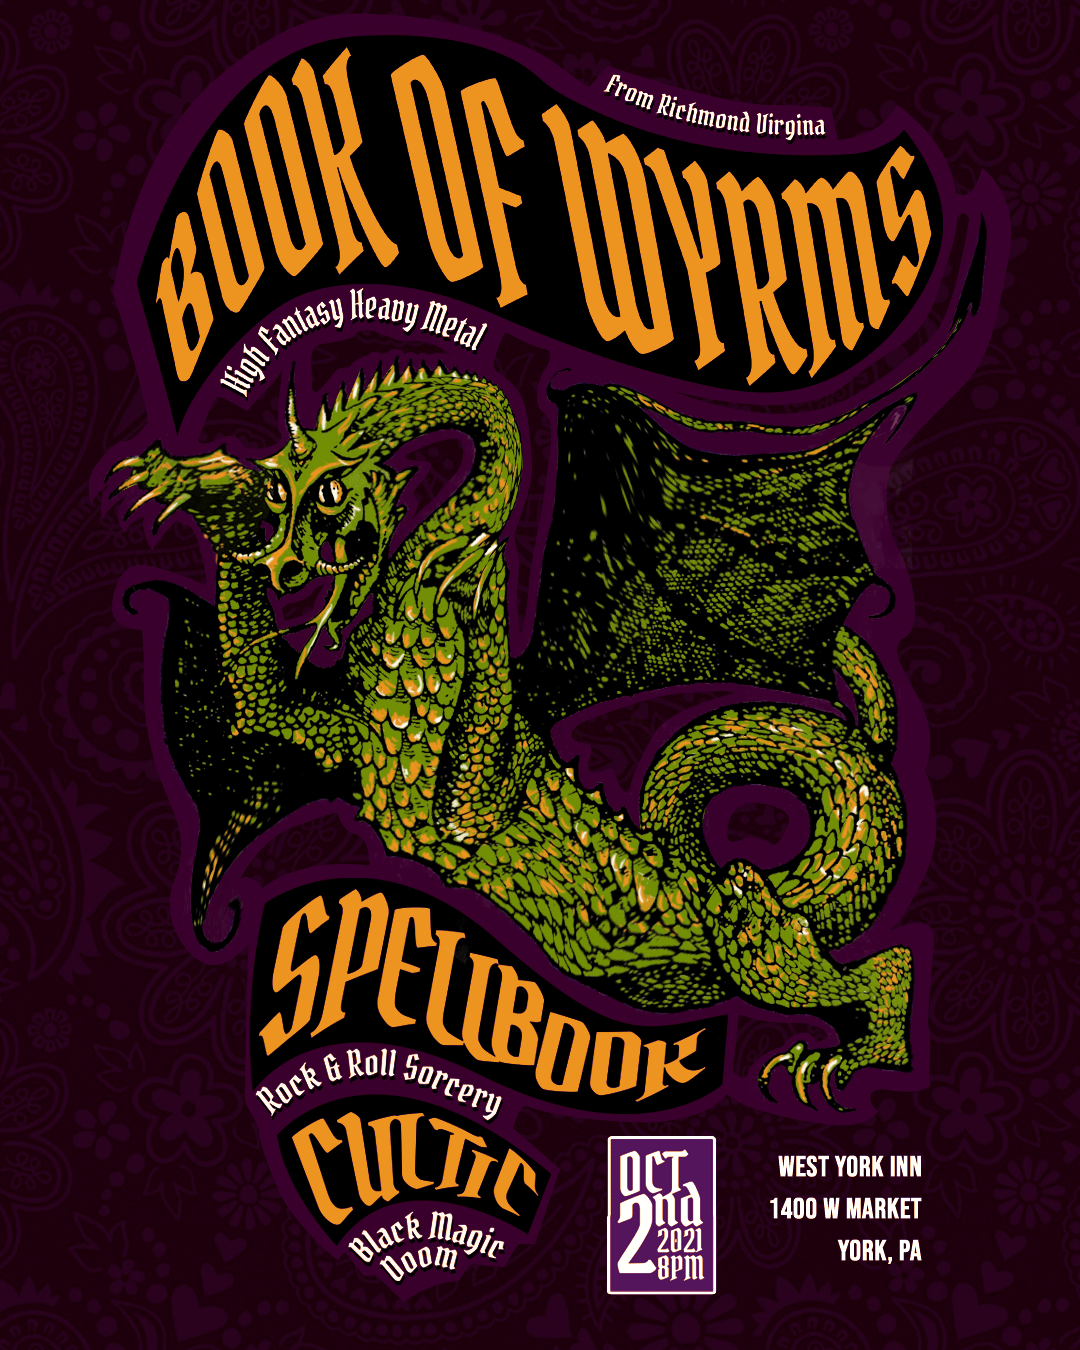 Book of Wyrms, Spellbook, & Cultic - Show Flyer - October 2, 2021